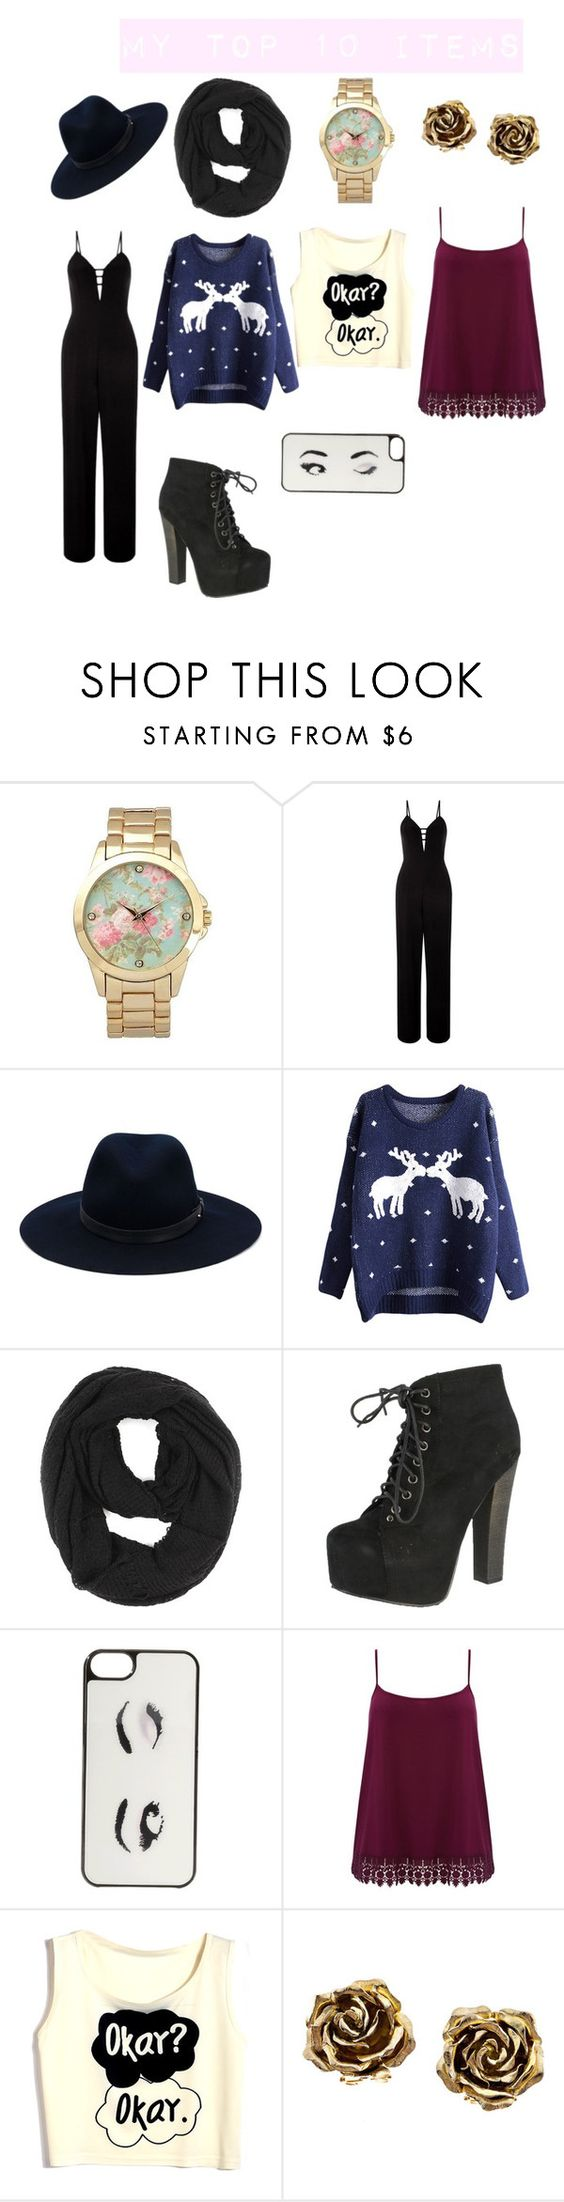 """Untitled #199"" by emmalemma-1 ❤ liked on Polyvore featuring rag & bone, Paula Bianco, Breckelle's, Kate Spade, M&Co, Tiffany & Co. and plus size clothing"